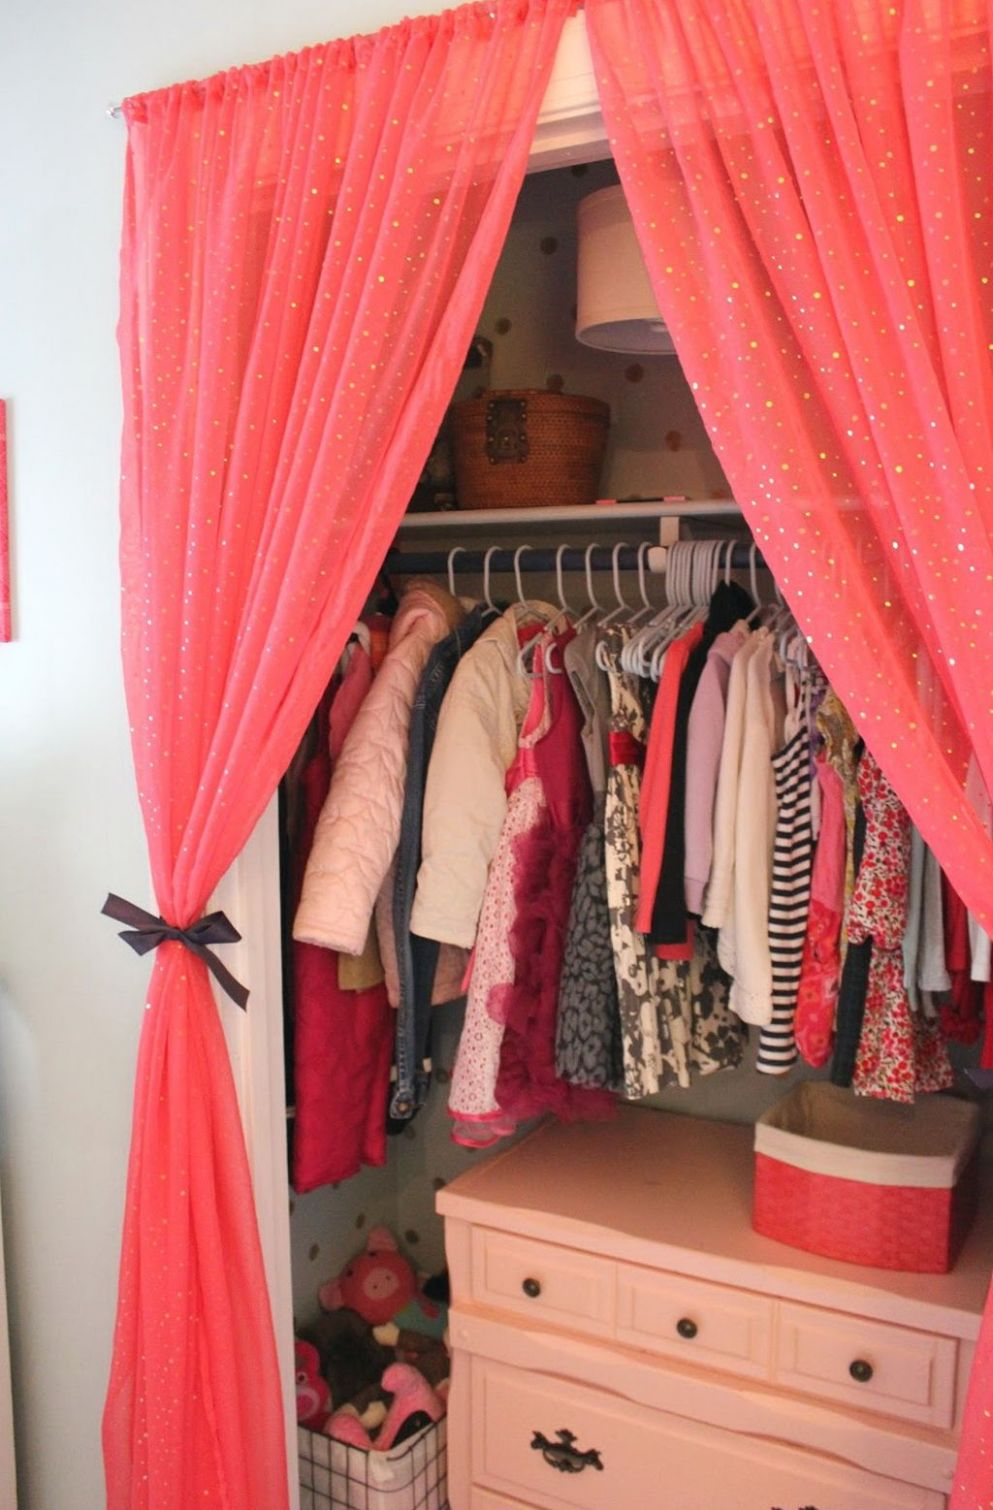 Best Closet Door Ideas to Spruce Up Your Room | Curtains for ..